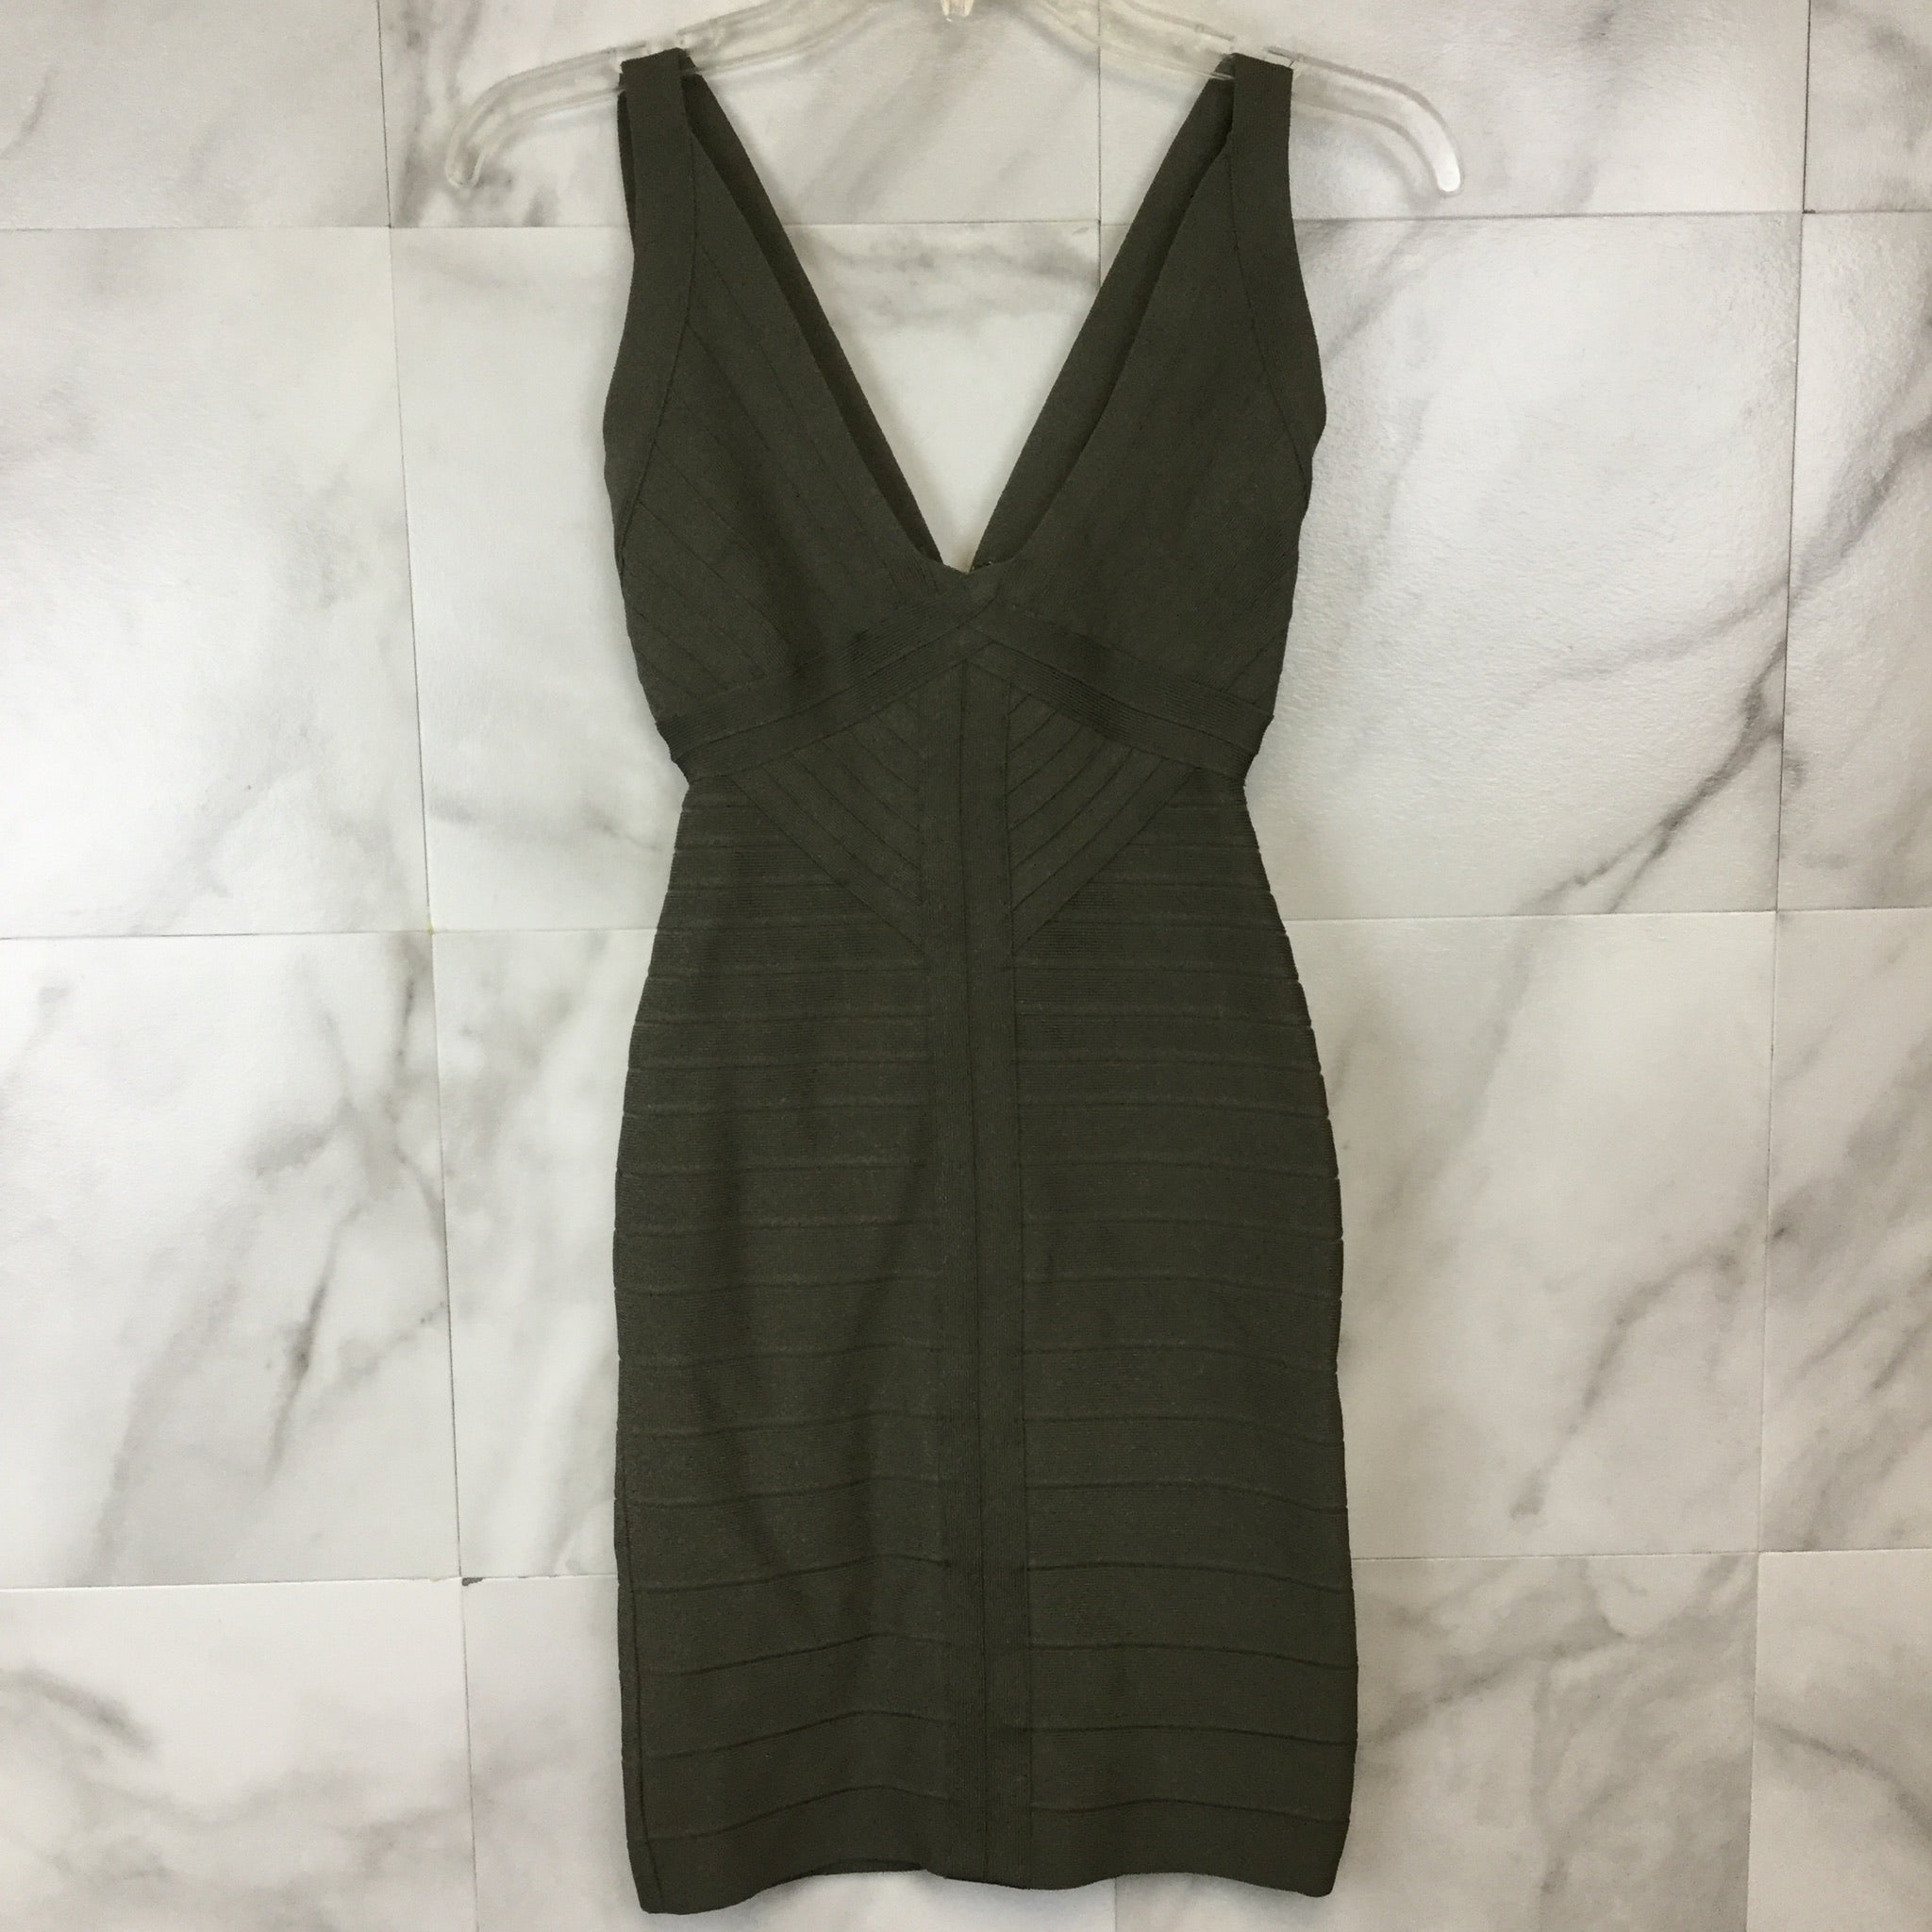 Herve Leger Trista Dress - size XS